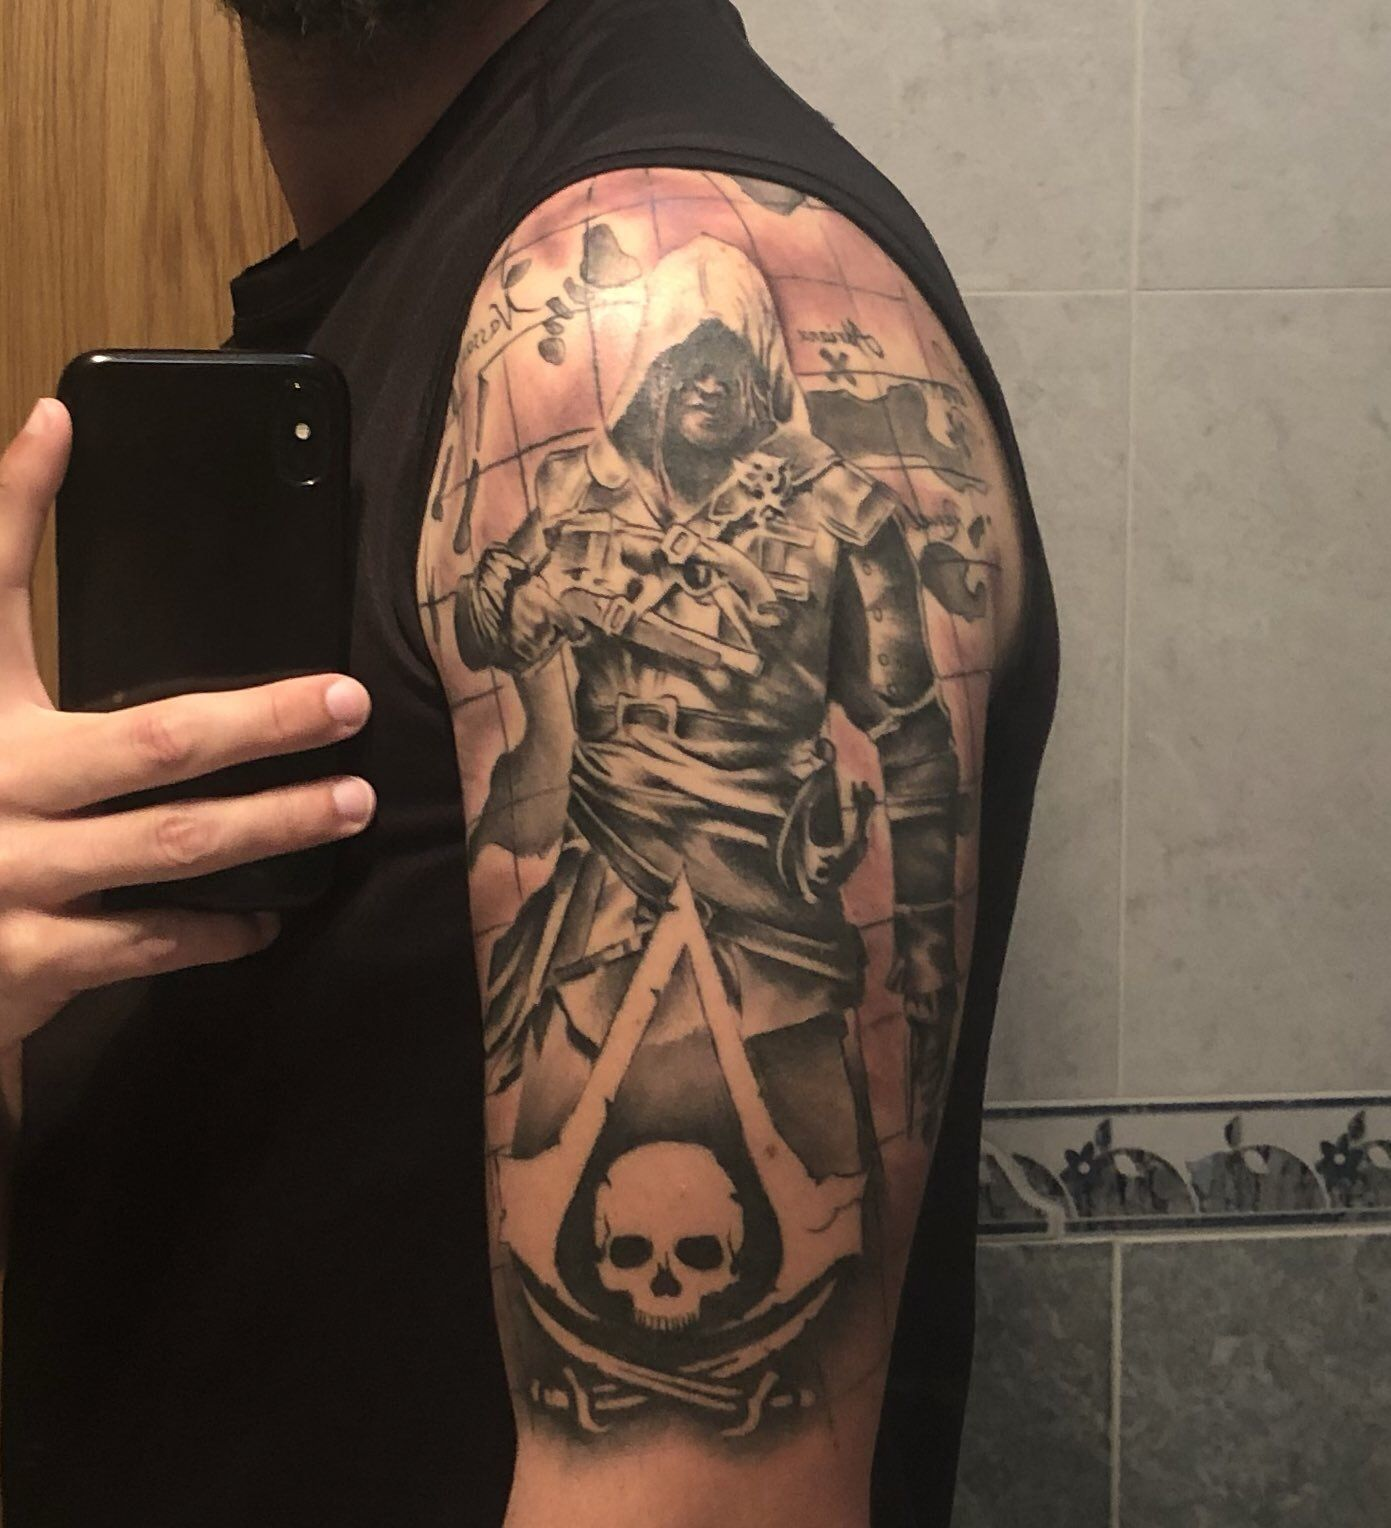 Assassins Creed Black Flag Tattoo By Elartedelbuho Assassins Creed Black Flag Black Flag Tattoo Assassin S Creed Black